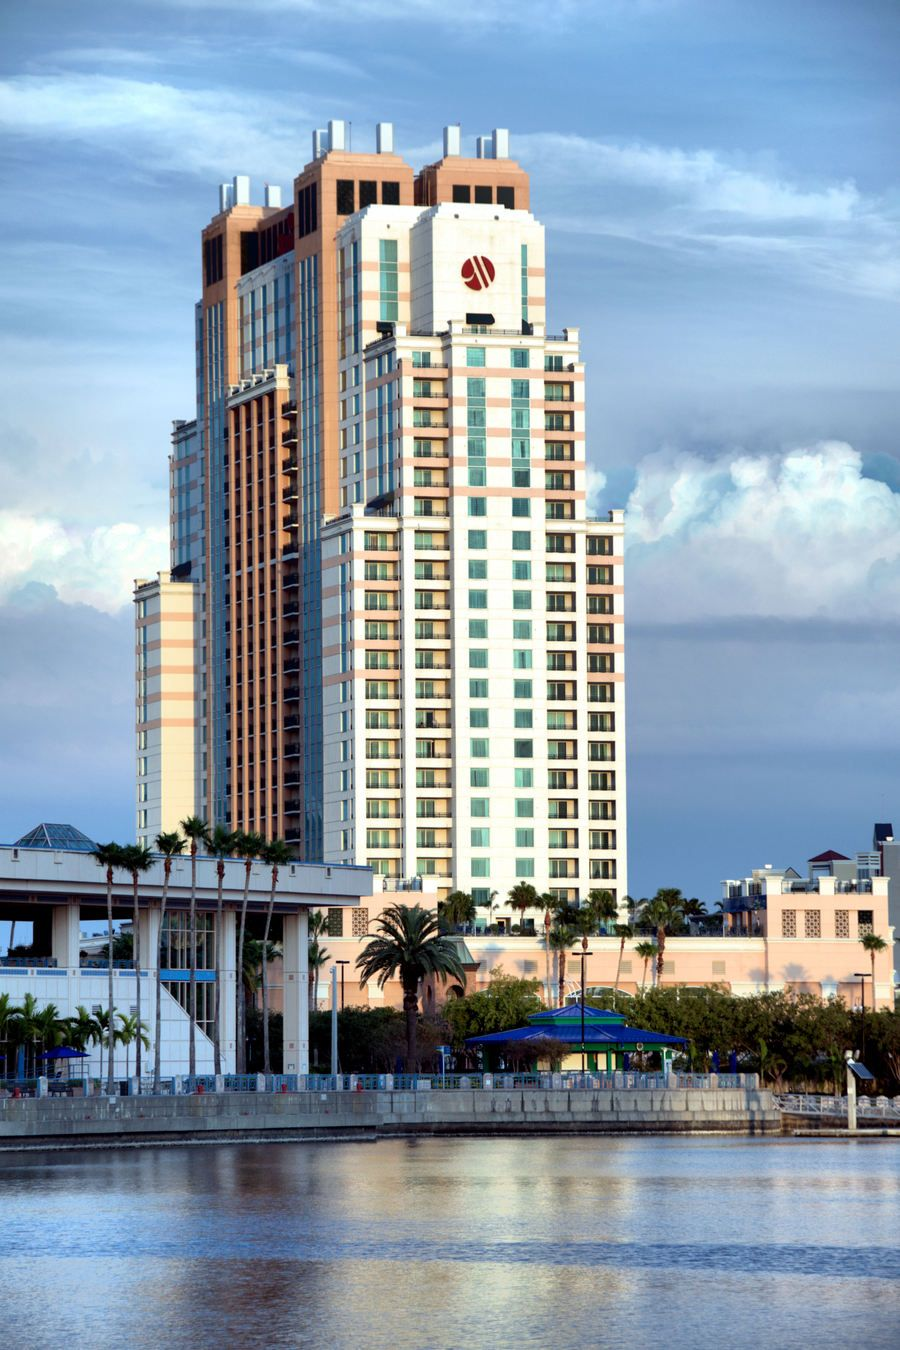 Tampa Marriott Waterside Florida Tampa Hotels Tampa Attractions